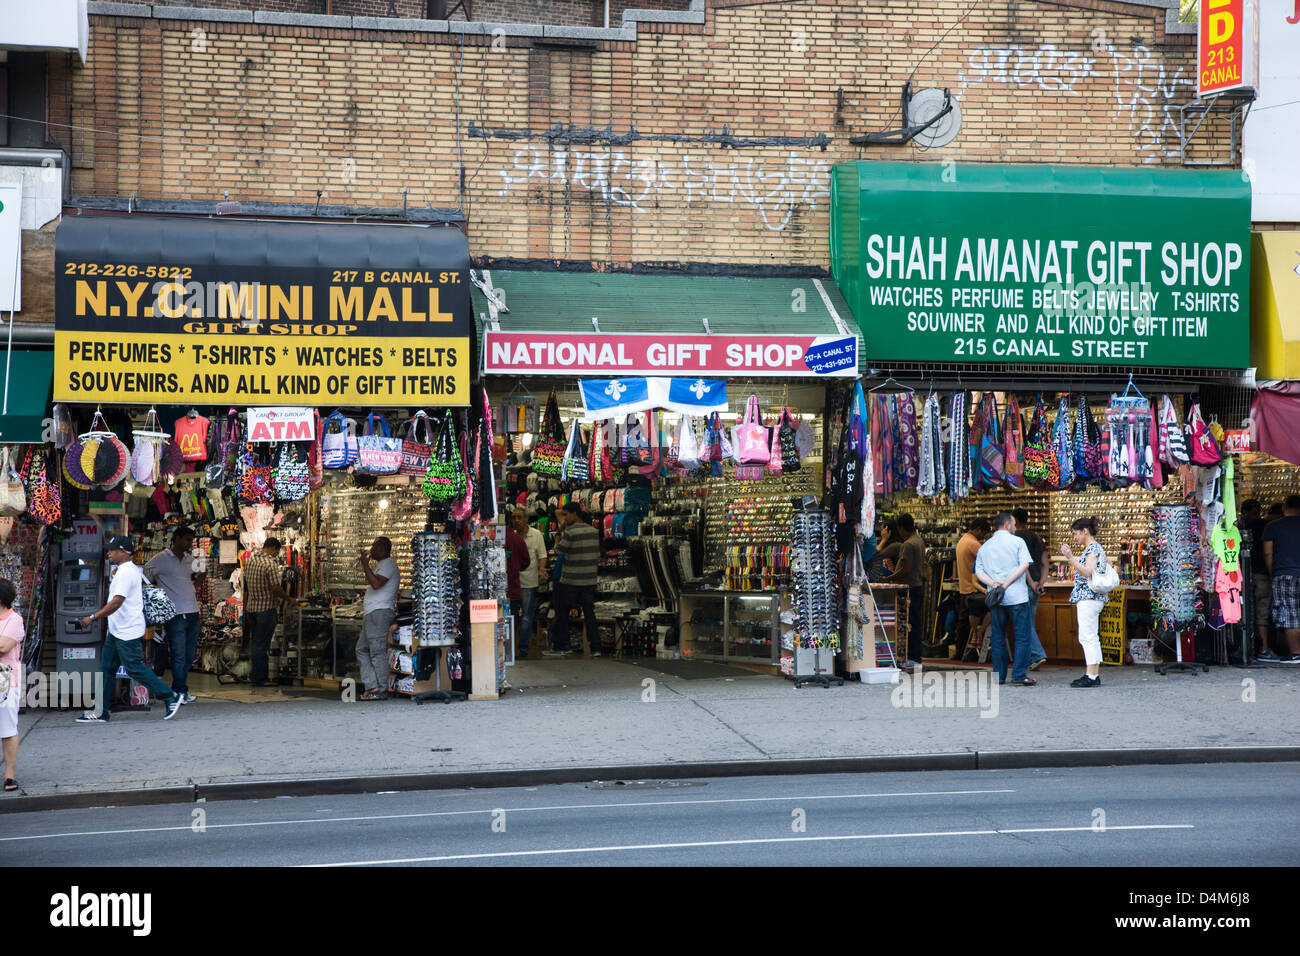 Souvenir shops including the NYC Mini Mall, National Gift Shop and ...